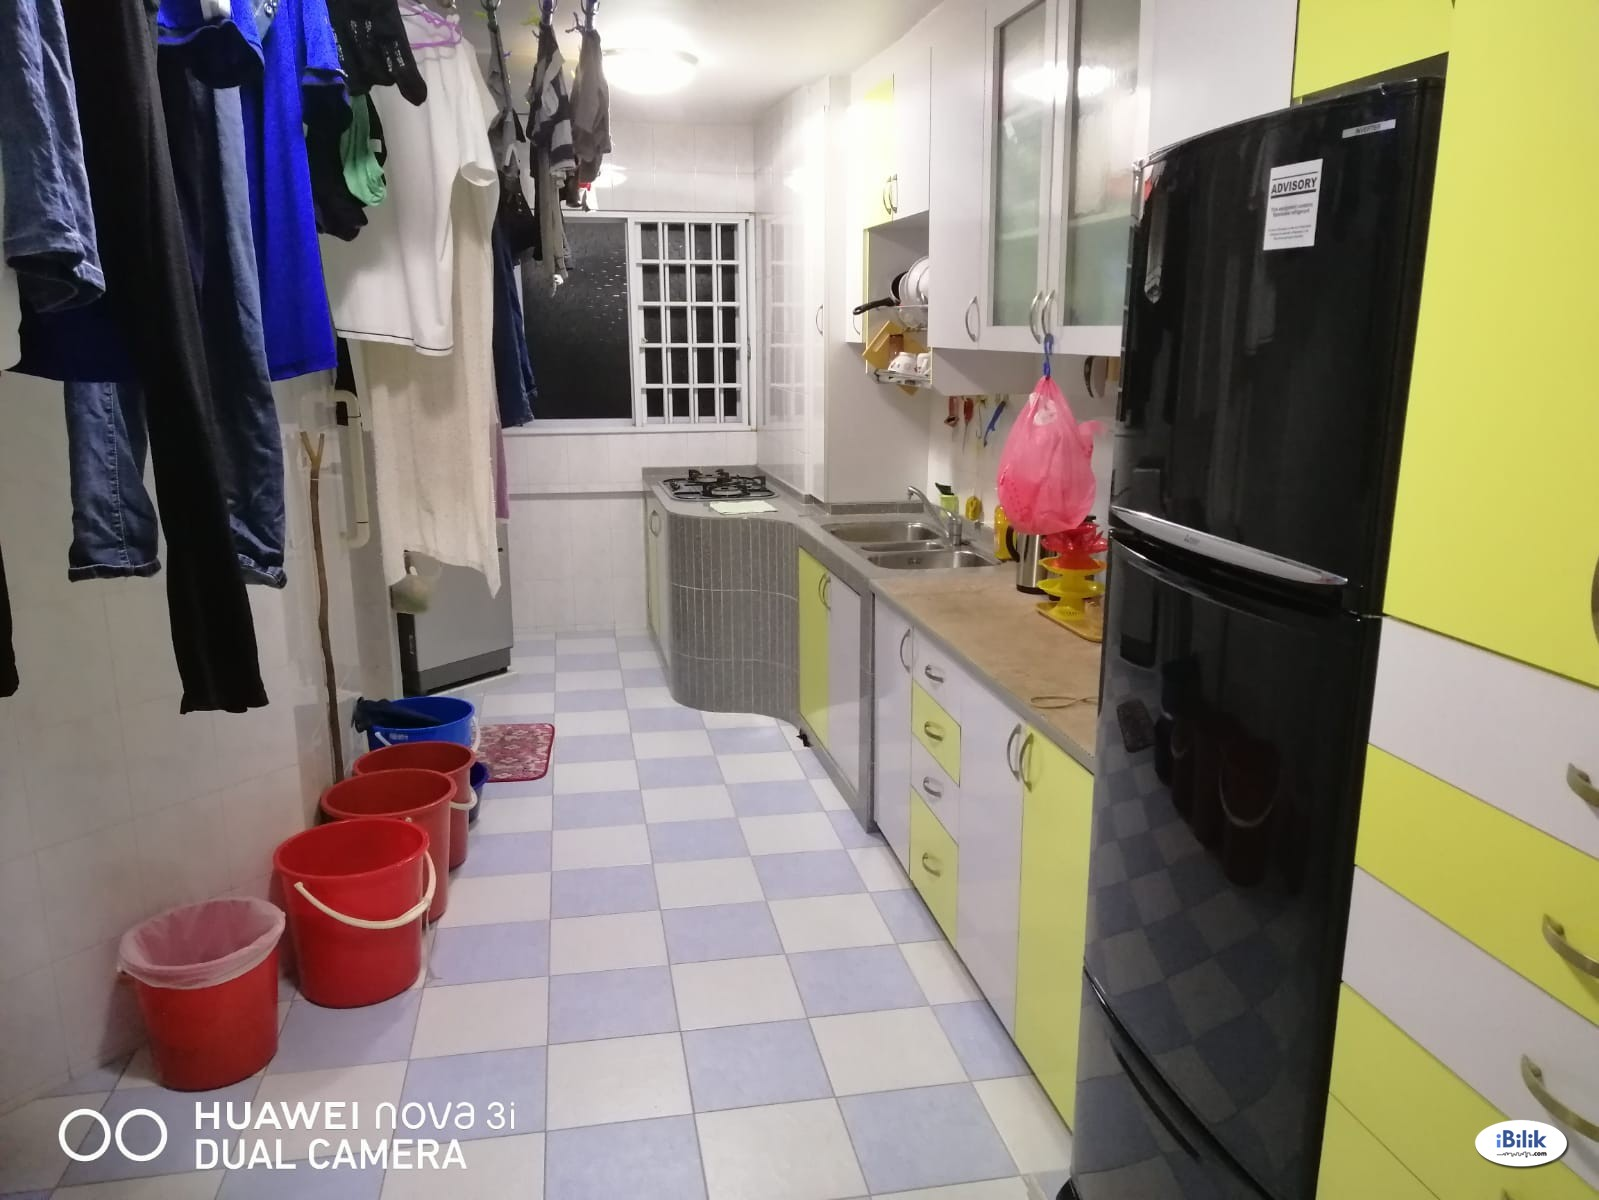 blk 141 bedok reservoir share room bedspaces for 4